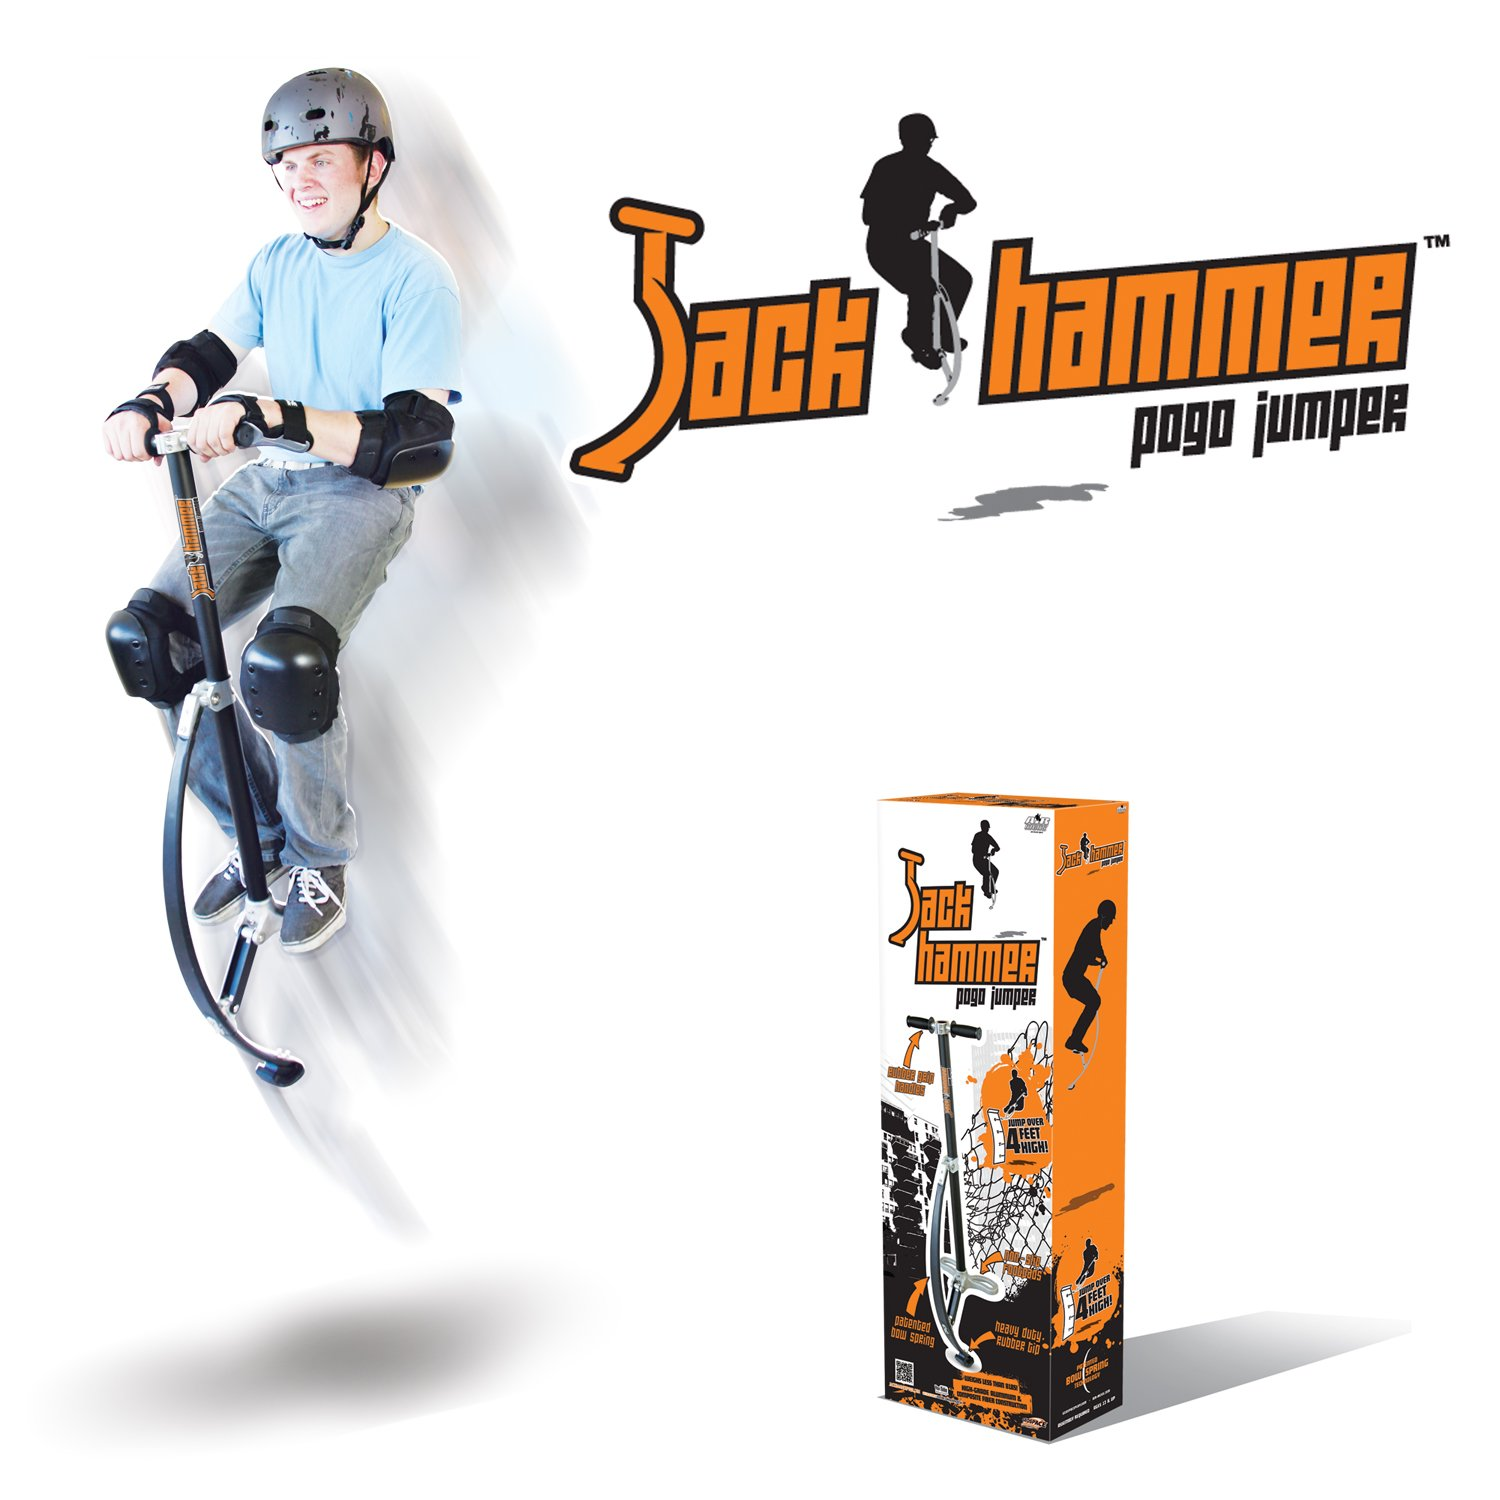 Jumparoo JACK HAMMER Extreme Pogo Jumper by Air Kicks, LARGE, 154-176 Lbs. (70-80 Kgs.) by Geospace